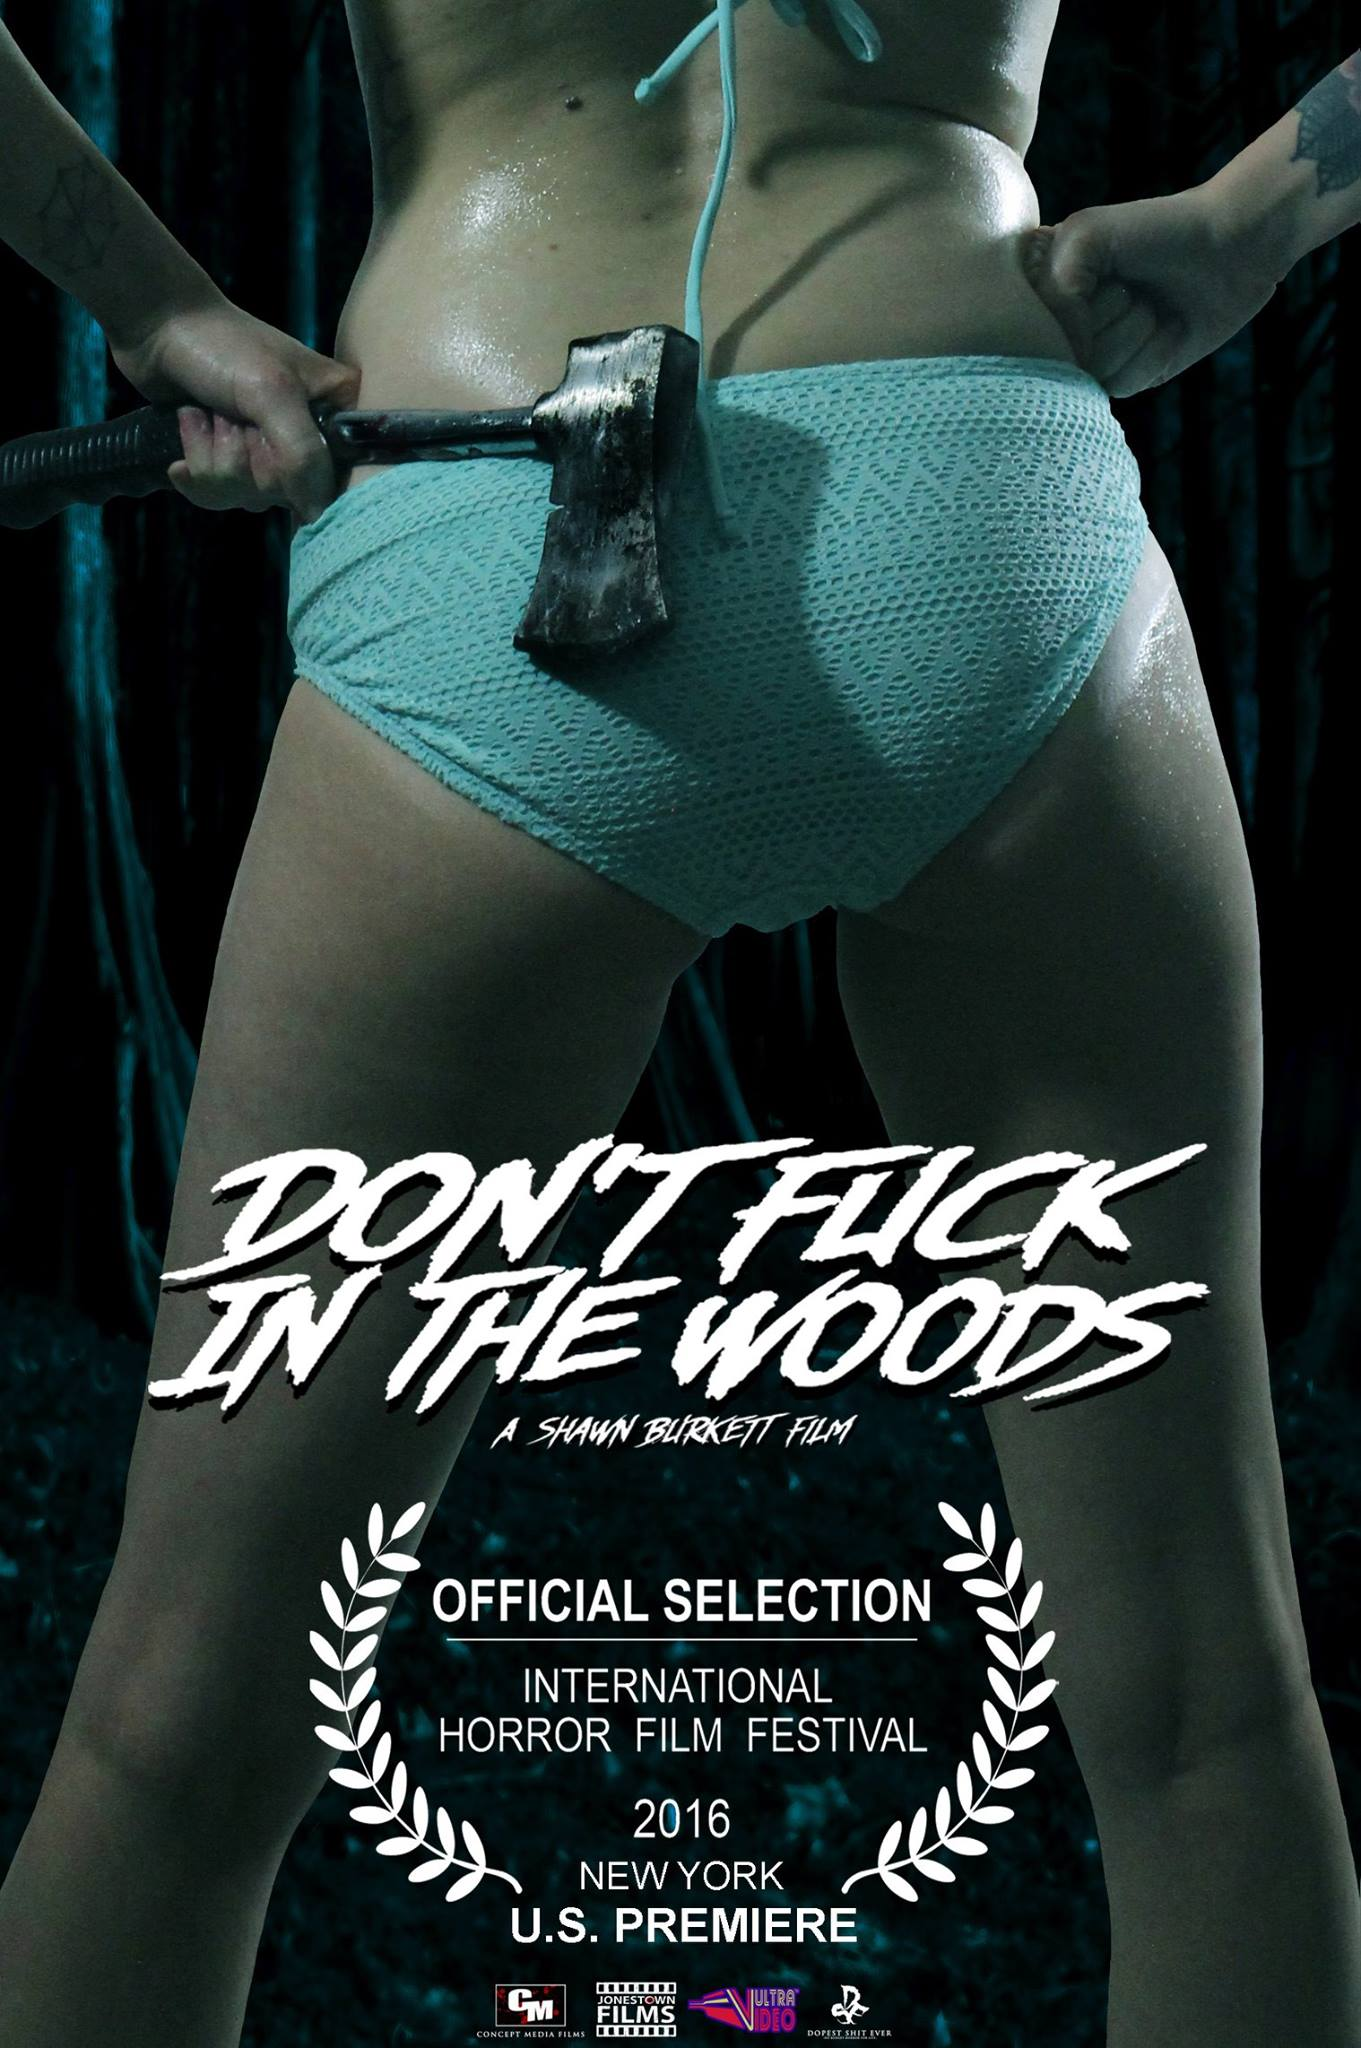 [18+] Don't Fuck in the Woods (2016) 720p WEB-DL x264 AC3 English DD2.0 CH 1.35GB